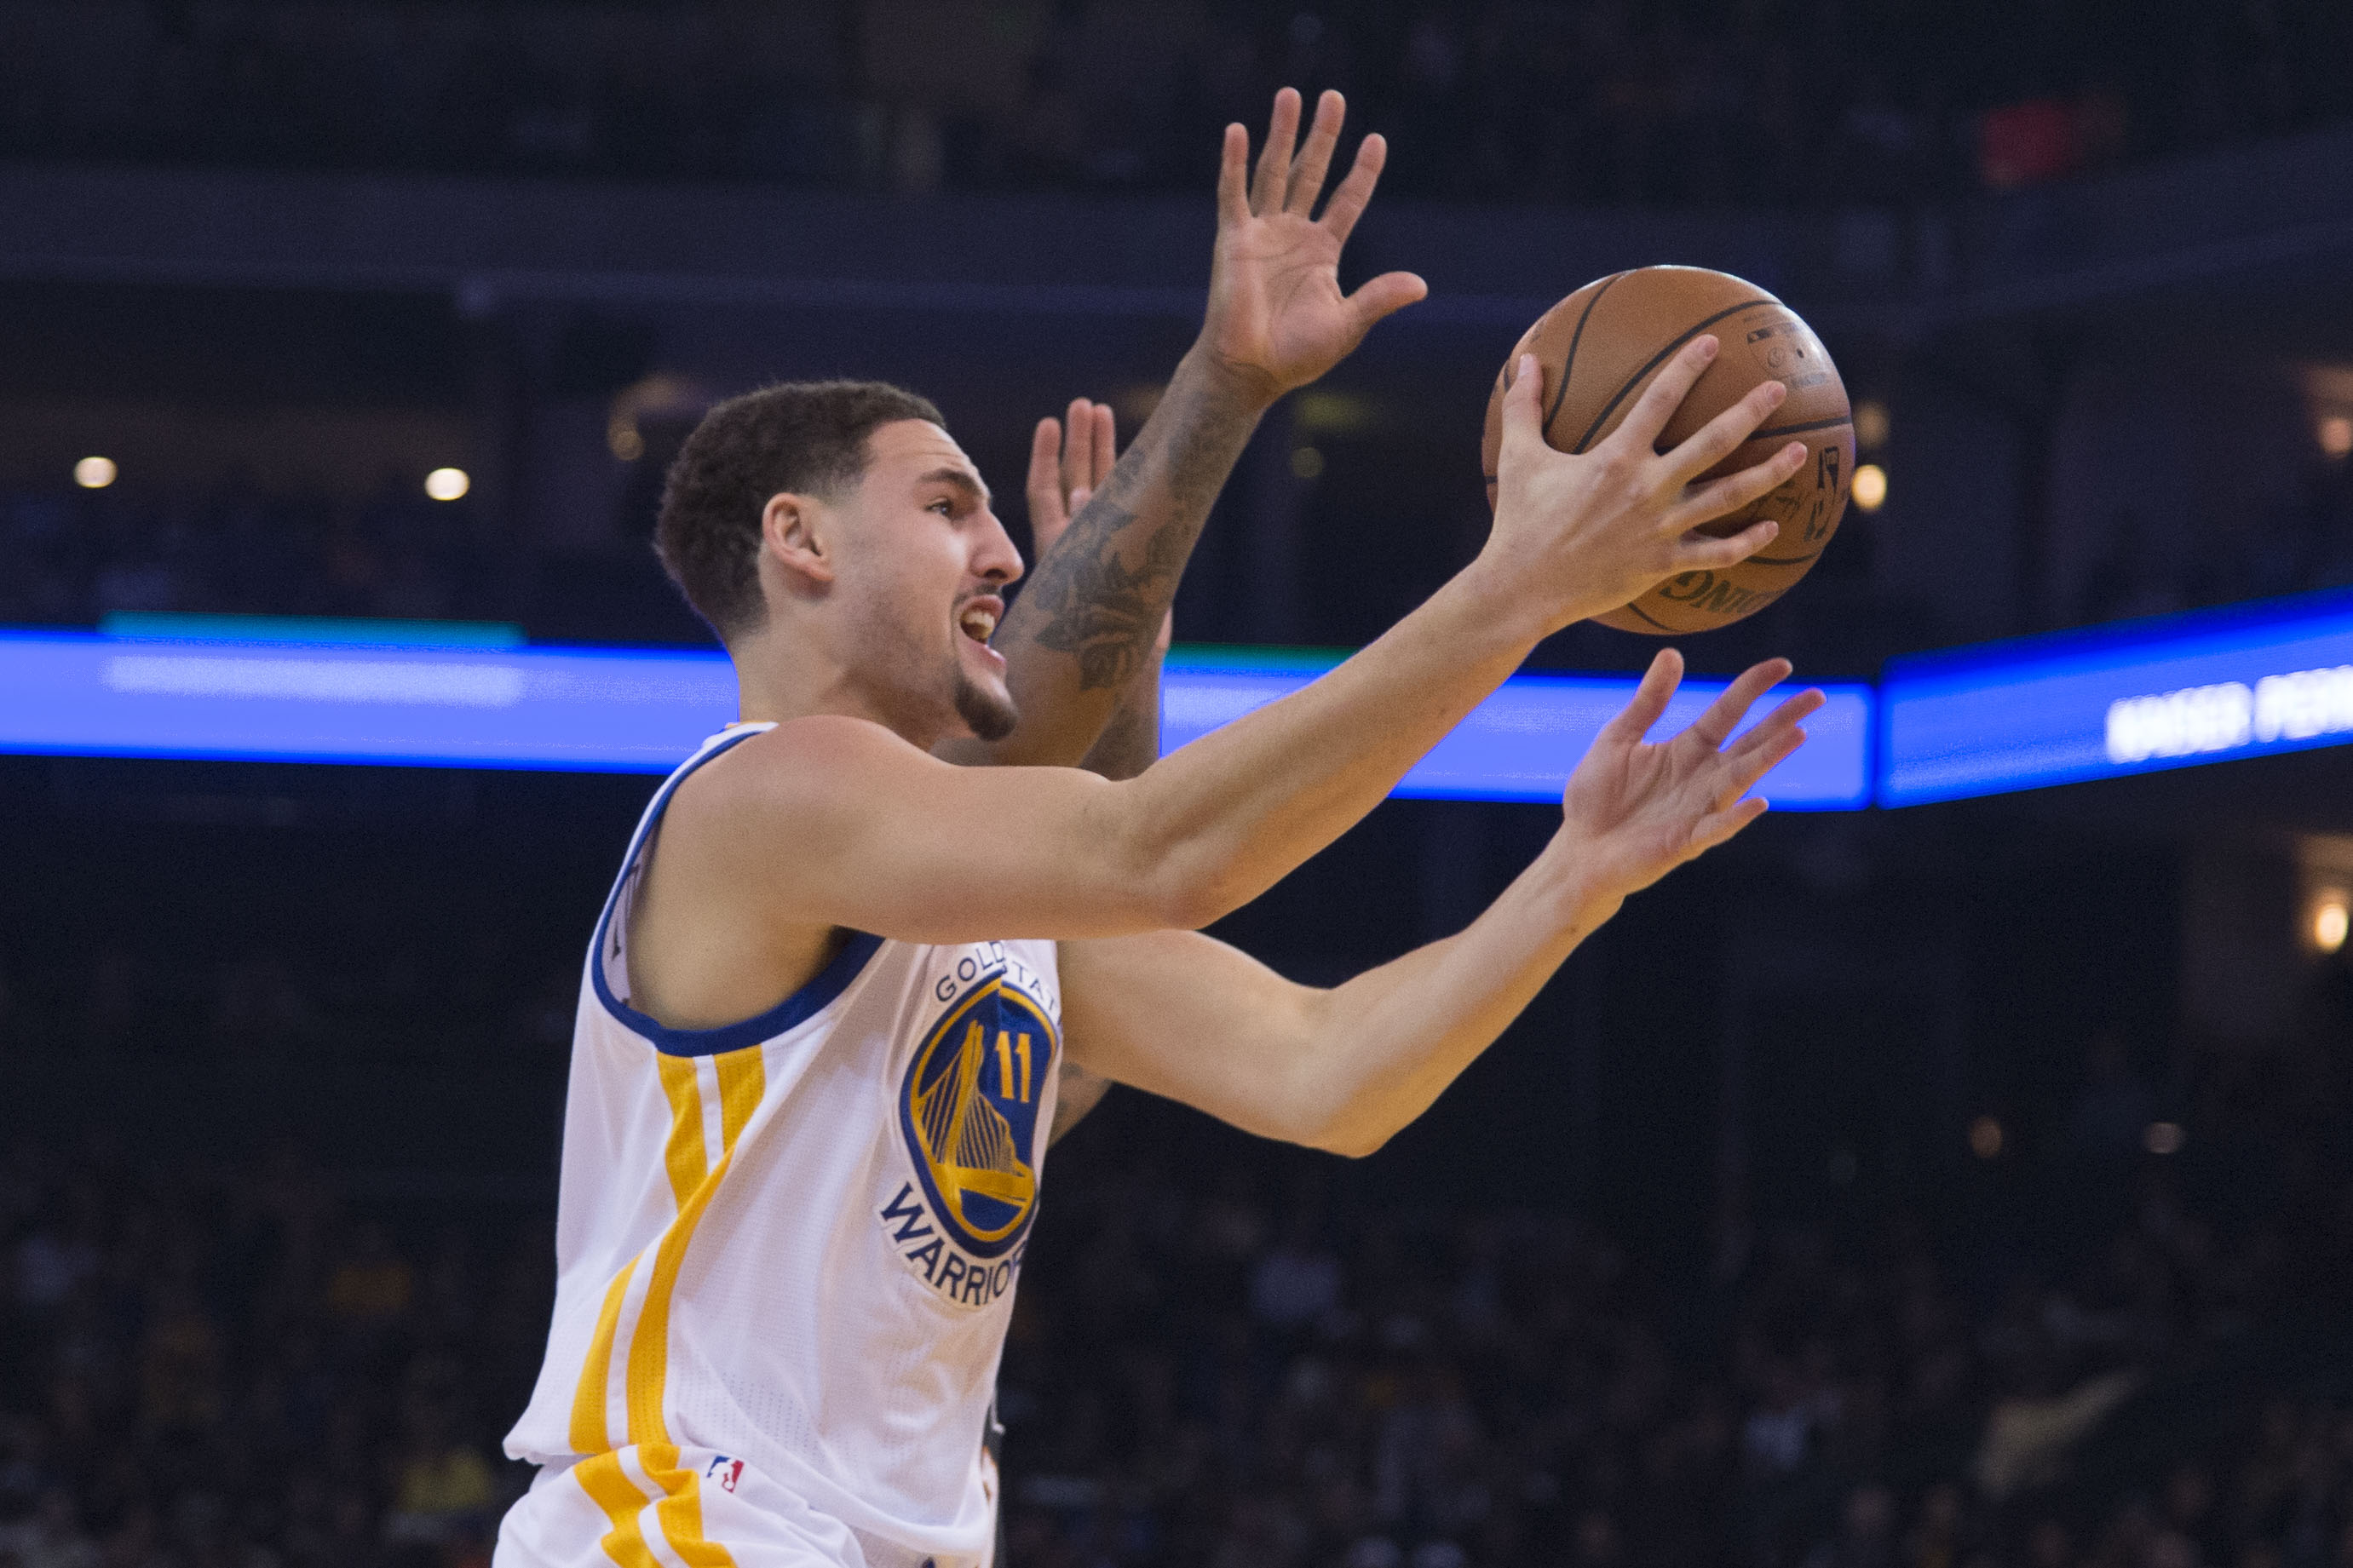 NBA scores 2015: The Warriors are back to crushing everything in their path